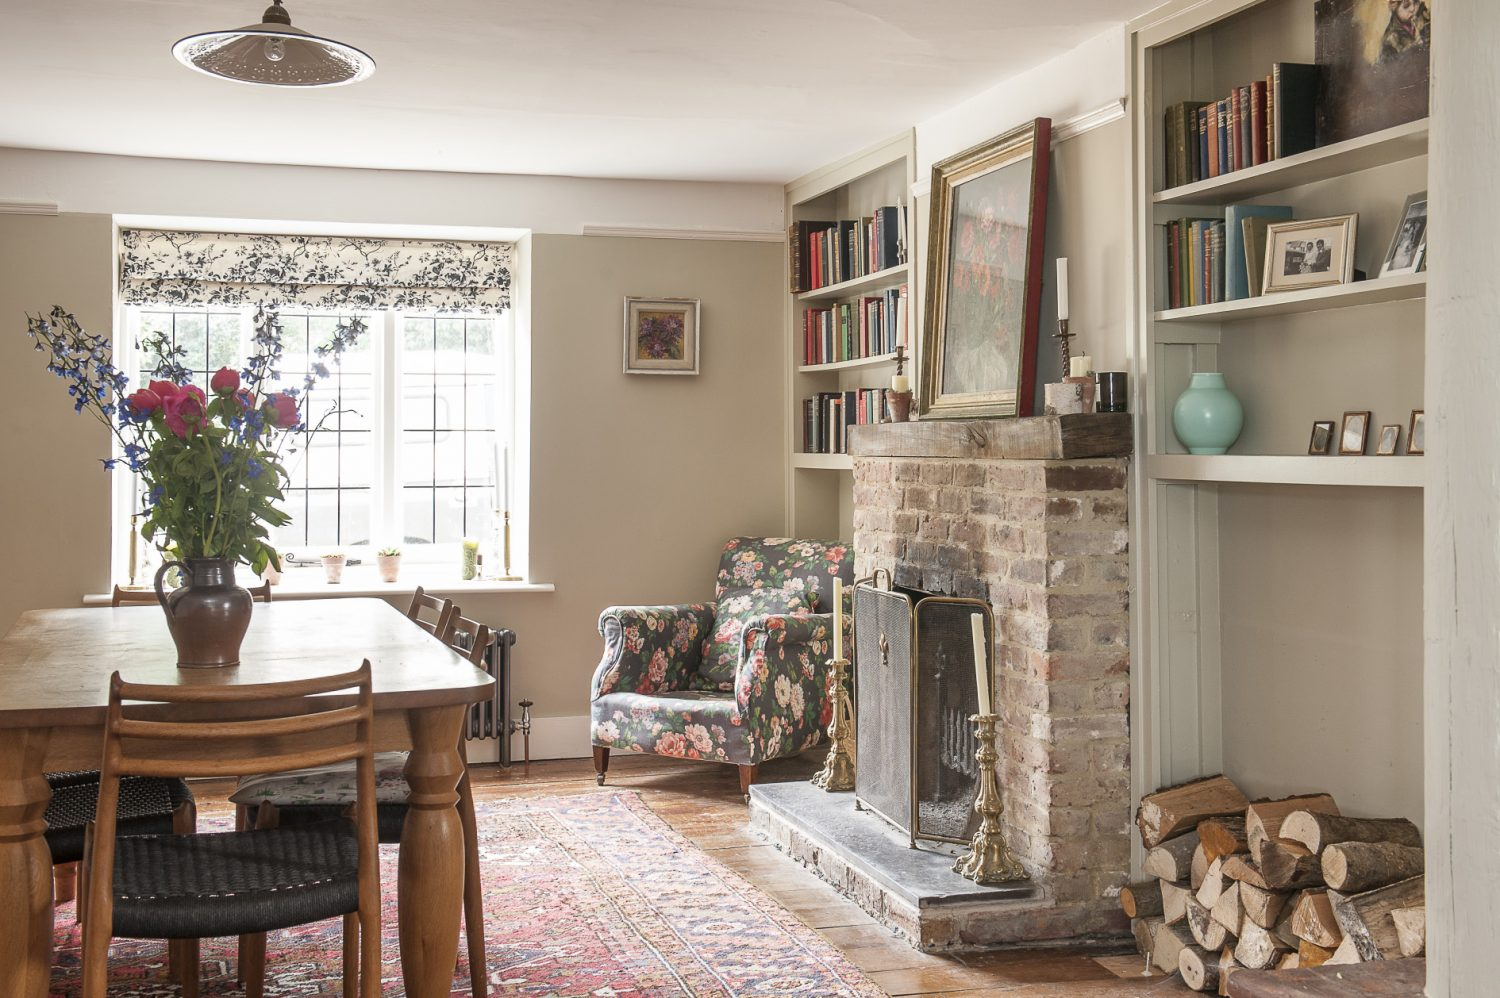 The spacious dining room was originally two rooms where the older and younger parts of the house met